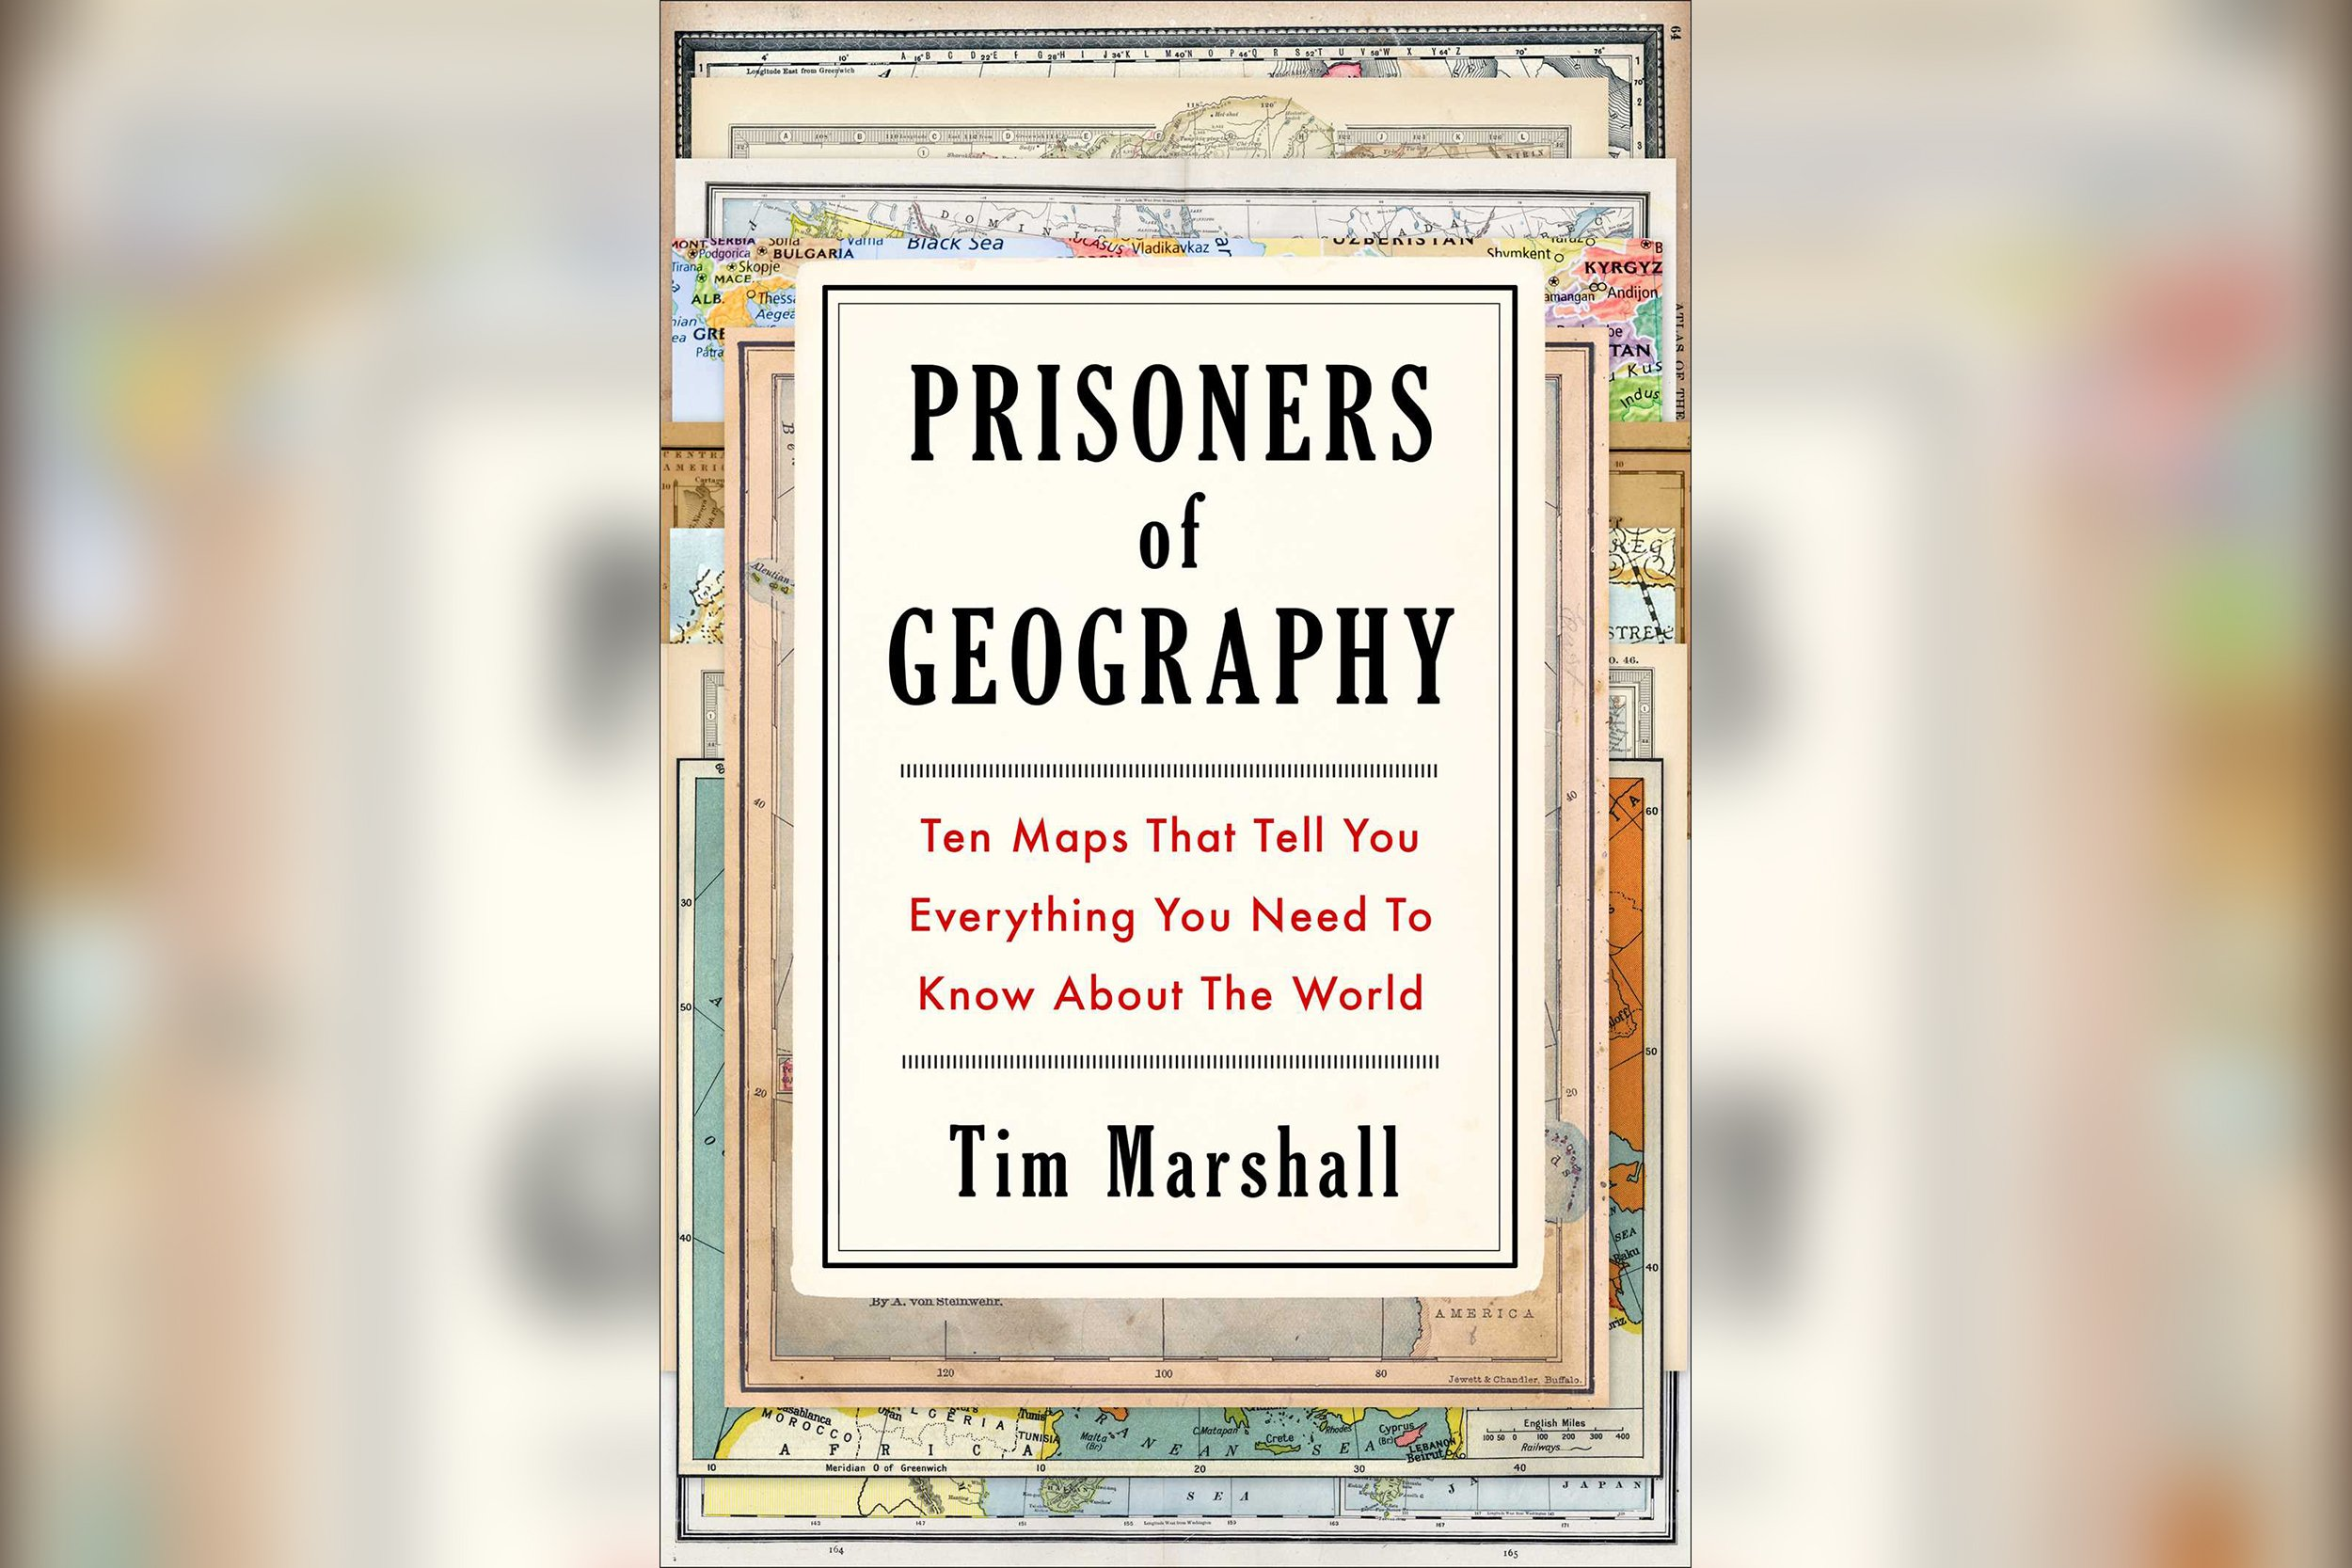 08_04_prisoners_of_geography_01